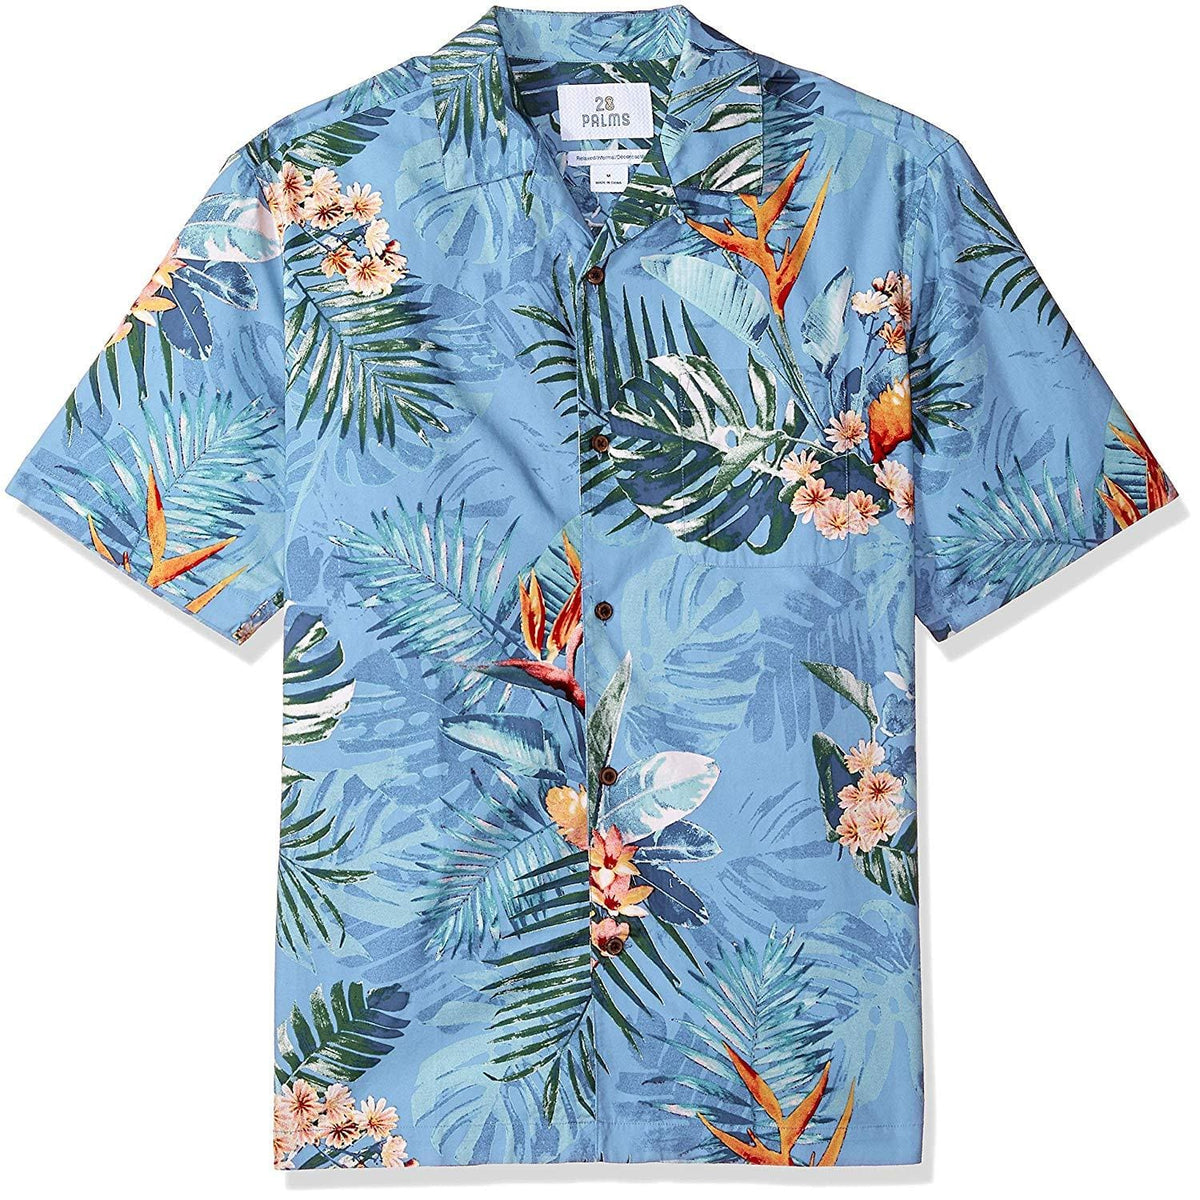 XX-Large Black Pineapple 28 Palms Mens Relaxed-Fit 100/% Cotton Tropical Hawaiian Shirt